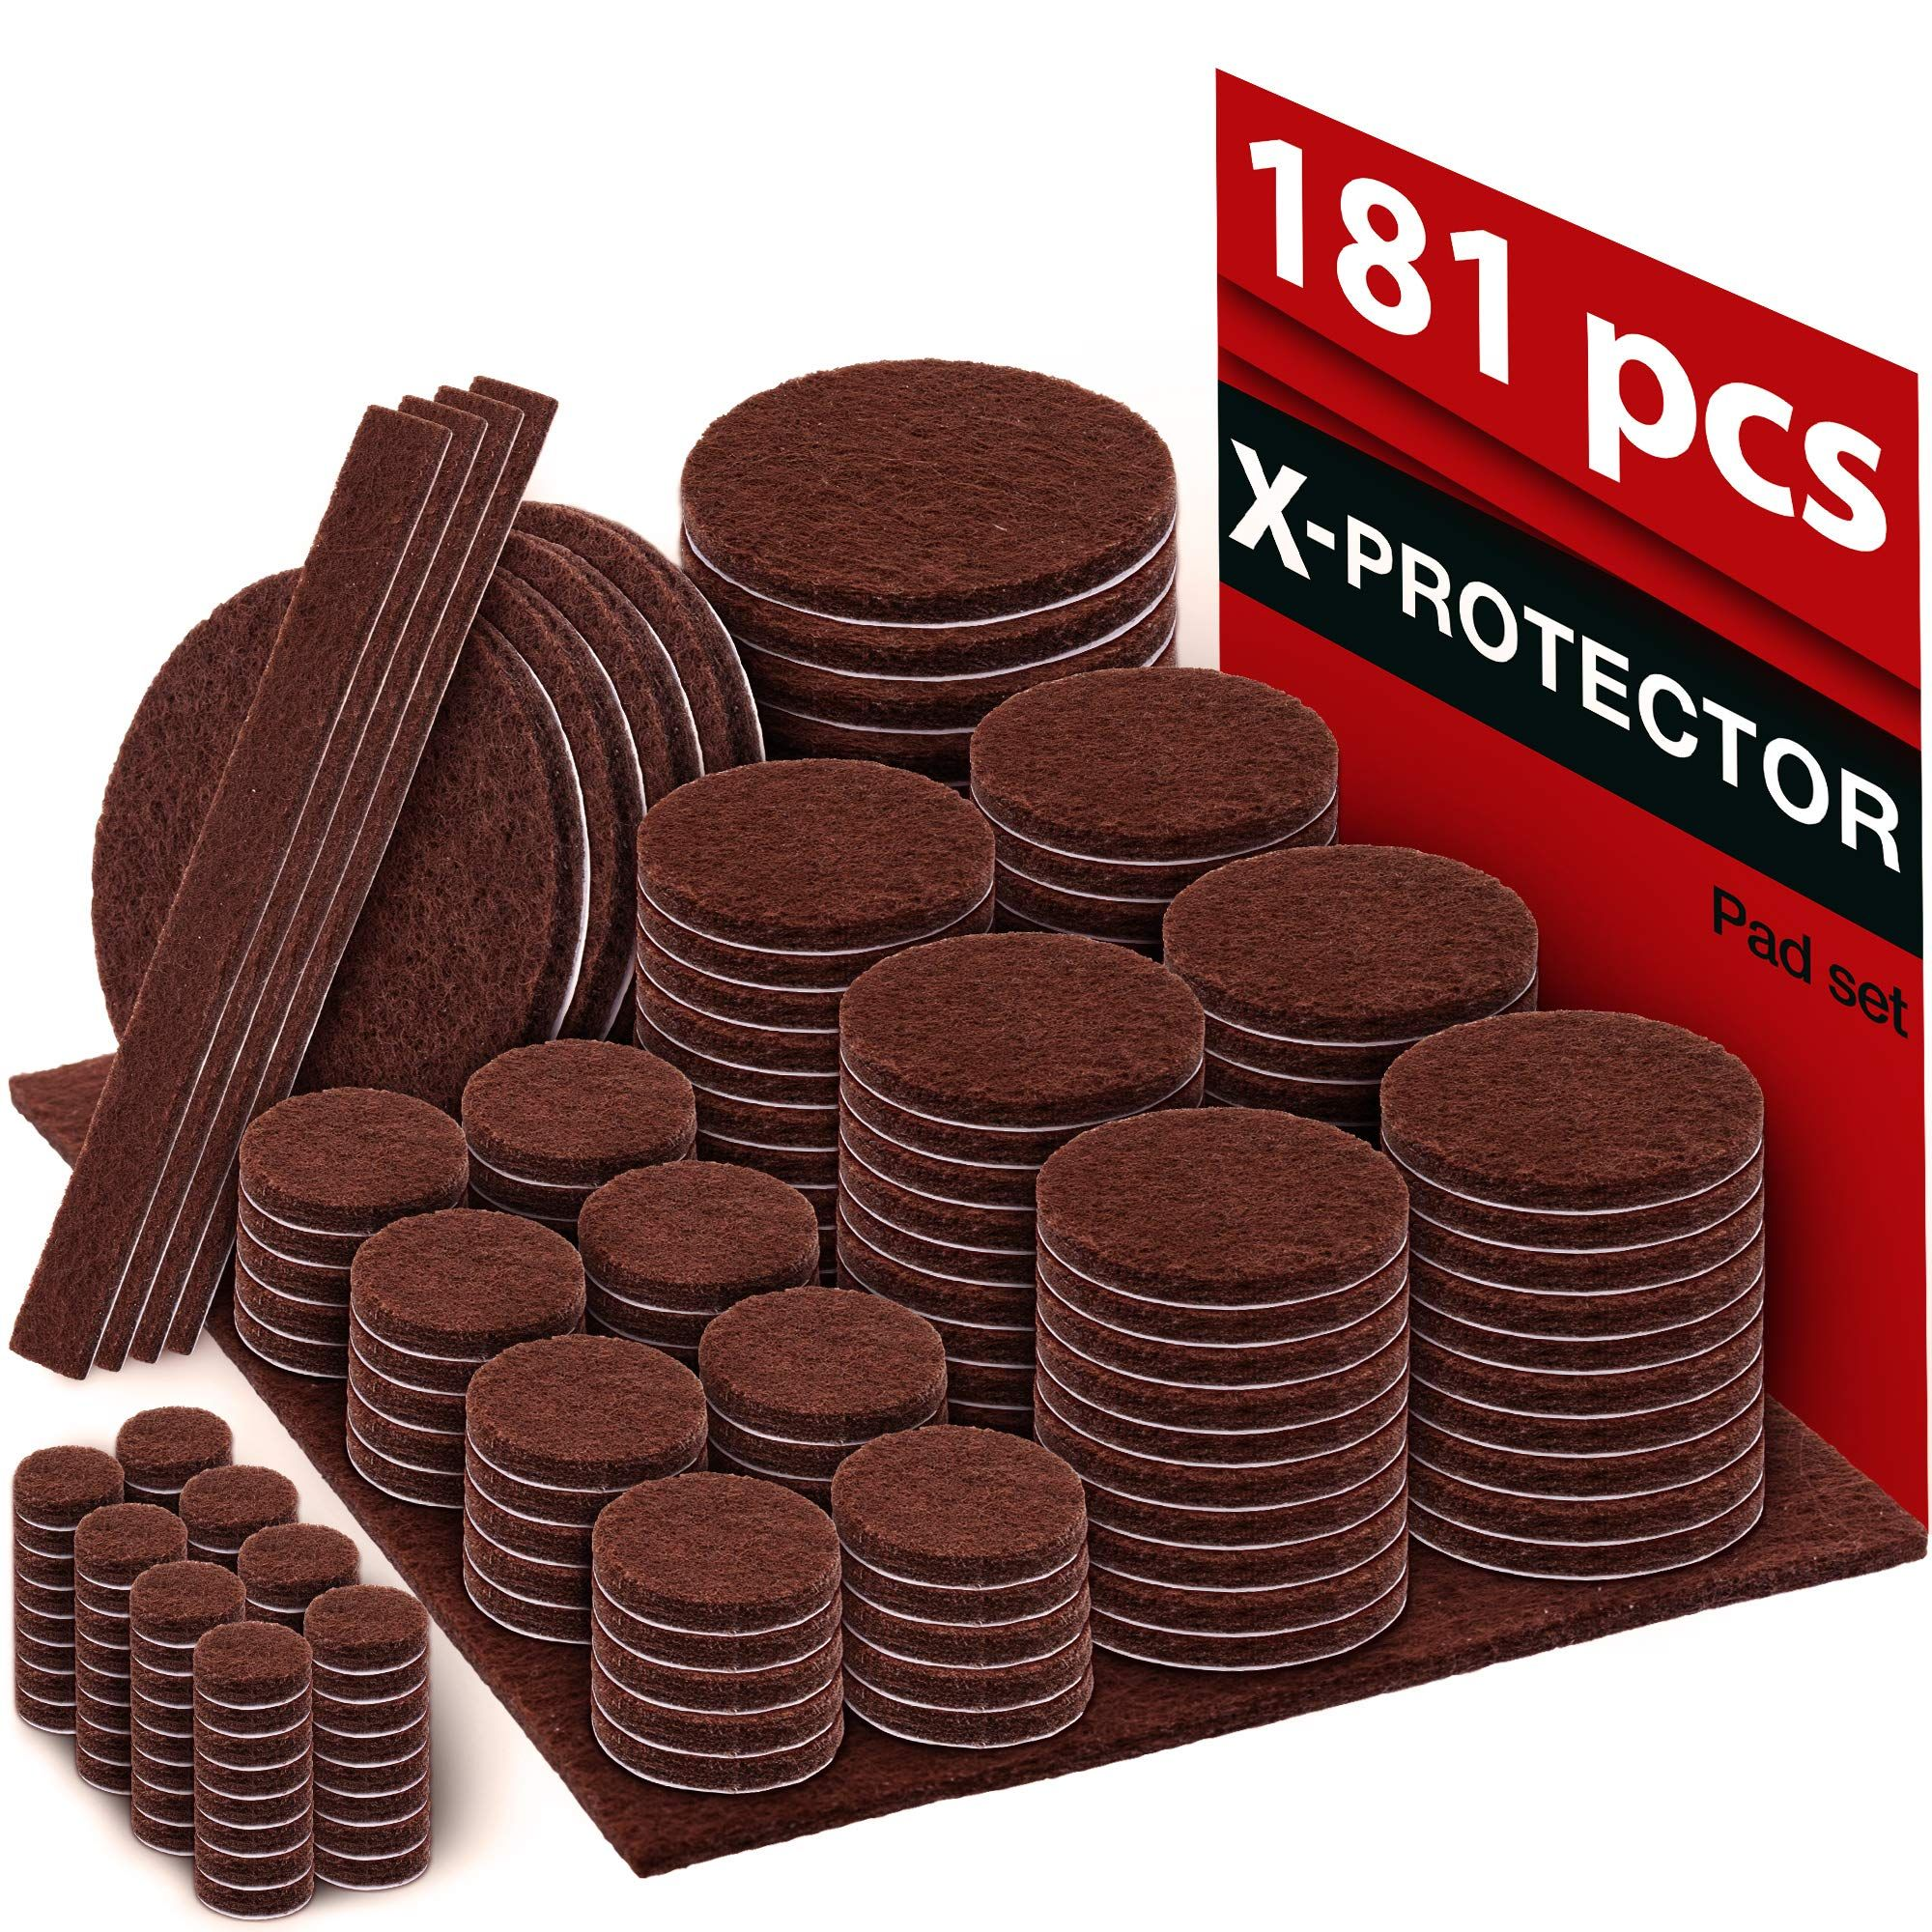 X Protector Premium Ultra Large Pack Felt Furniture Pads 181 Piece Felt Pads Furniture Feet All Felt Furniture Pads Furniture Pads Furniture Floor Protectors